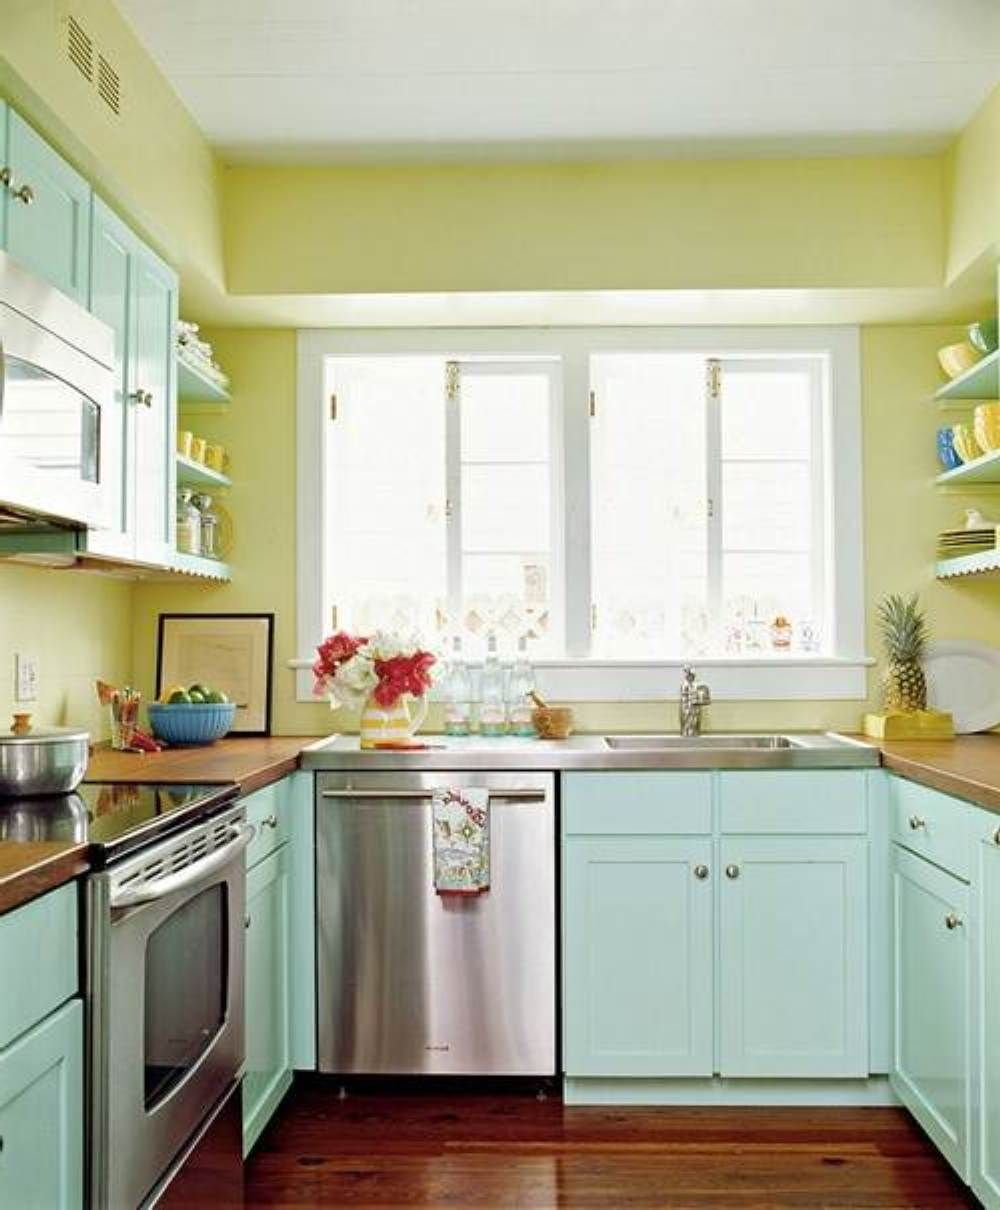 Best Paint For Kitchen Walls: Small Kitchen Design Ideas